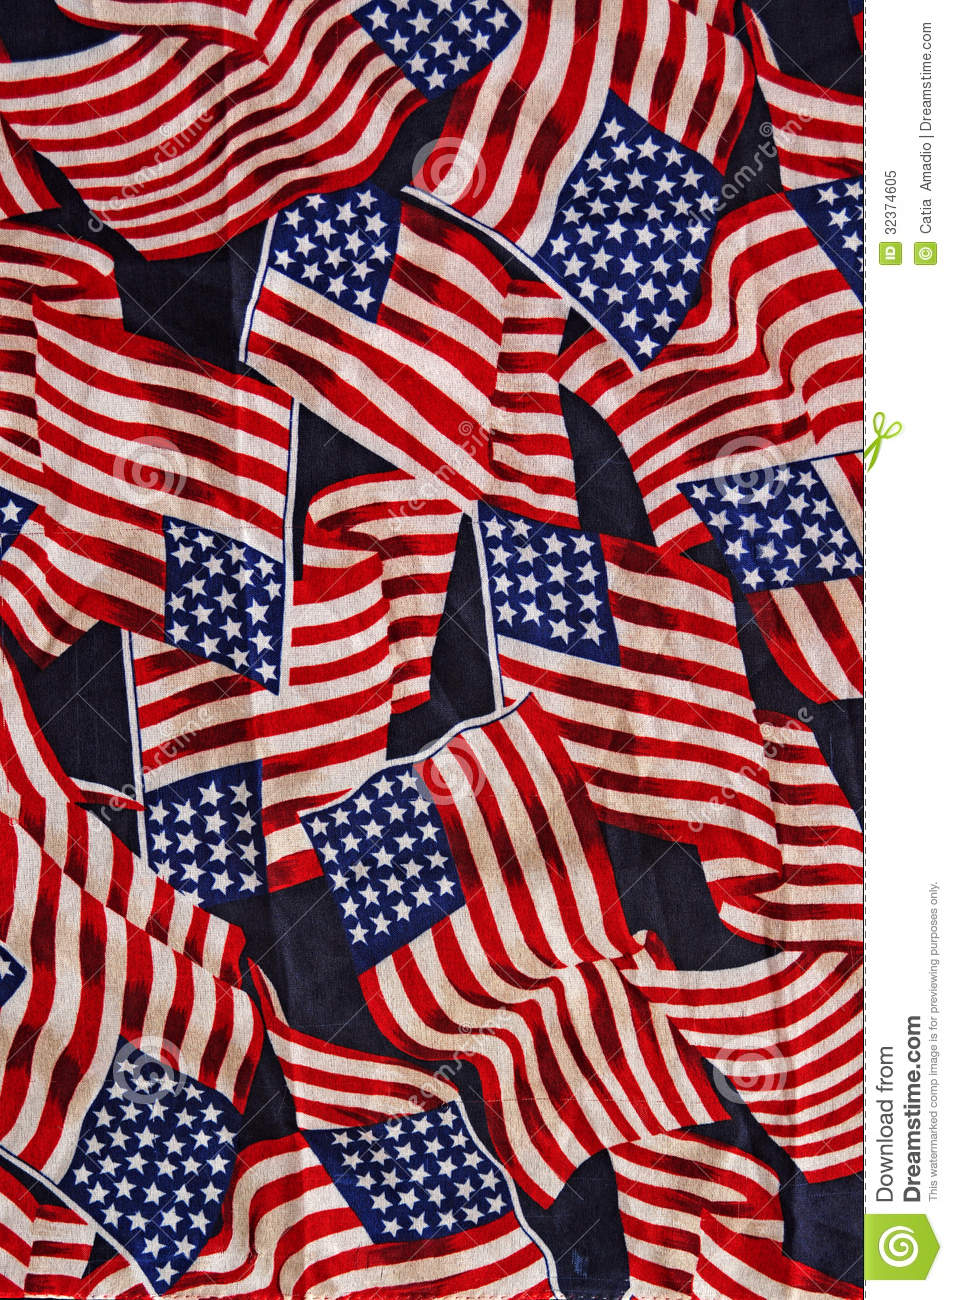 American flag background stock image  Image of abstract